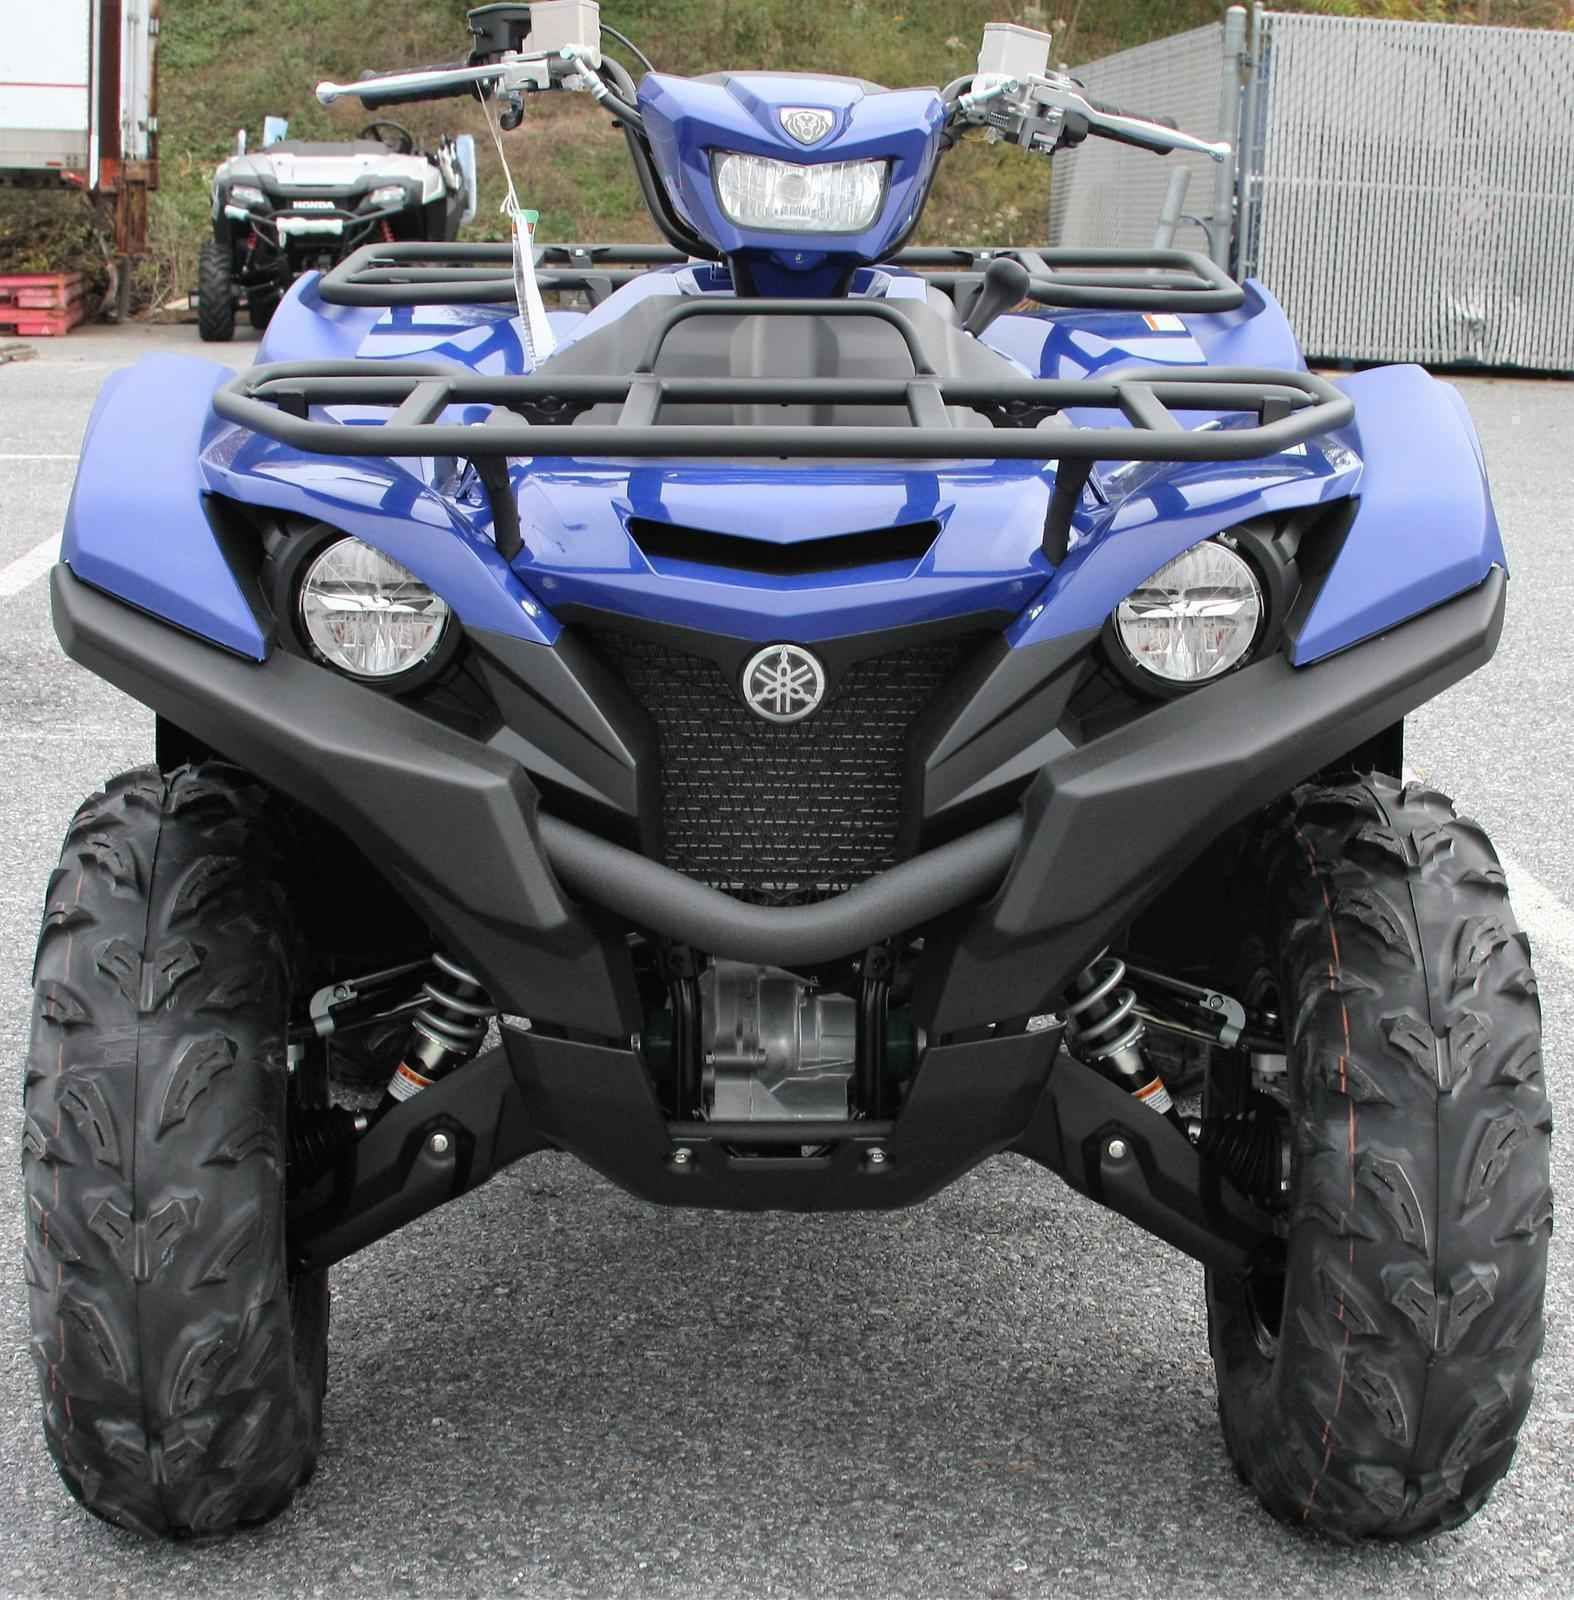 2017 Yamaha Grizzly >> New 2017 Yamaha Grizzly 700 Eps Atvs For Sale In